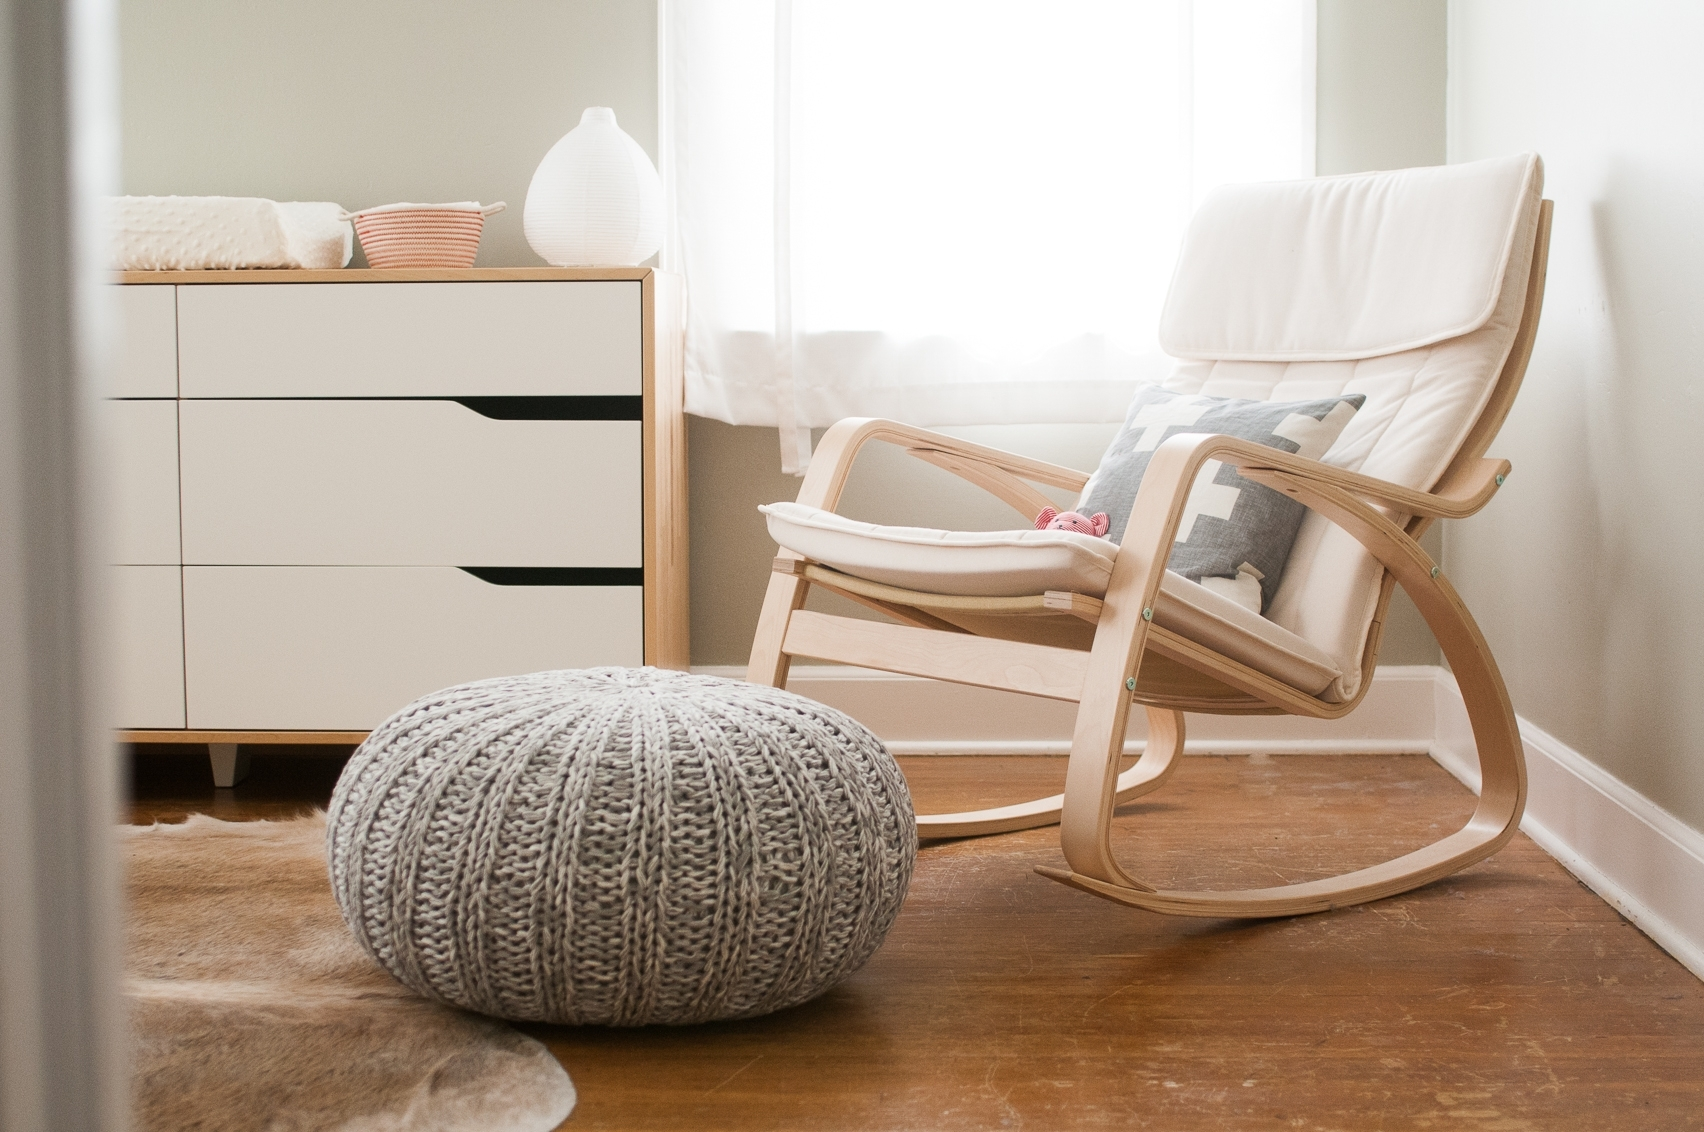 Homesfeed Pertaining To Rocking Chairs For Nursery (View 7 of 15)